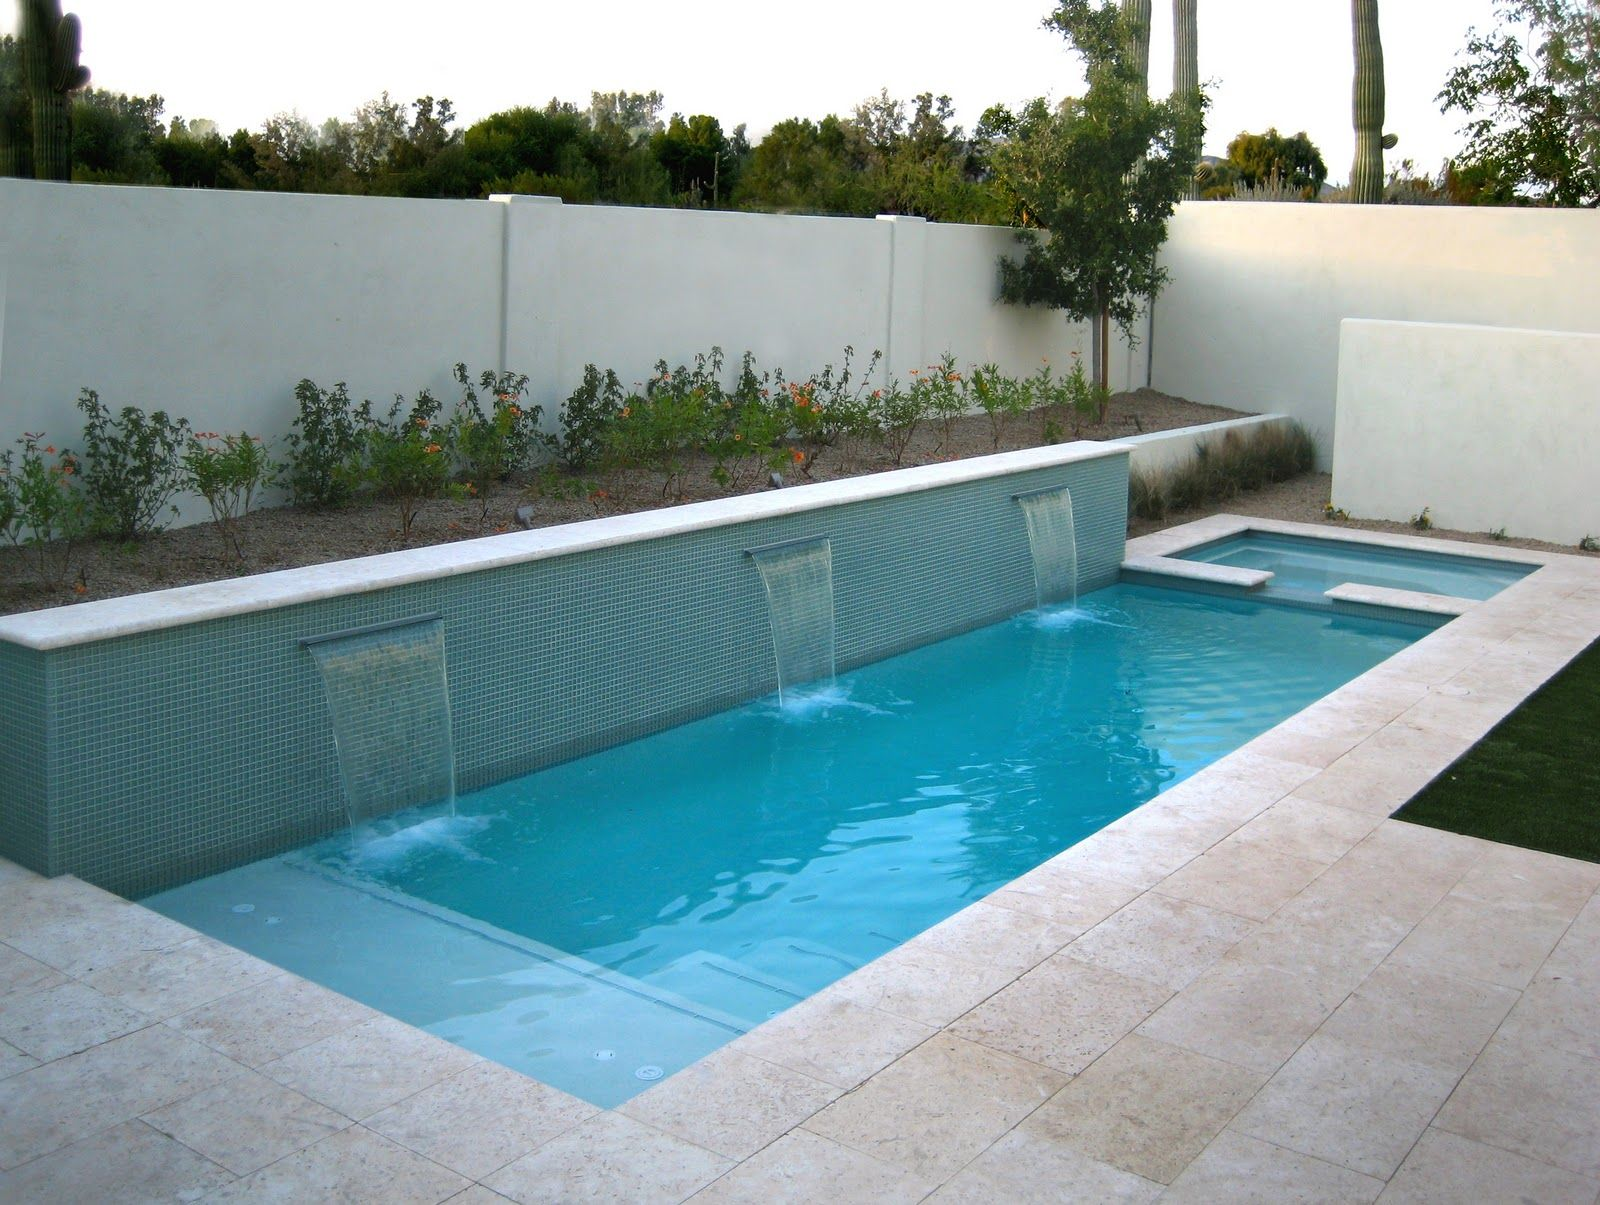 Piscina Design Swimming Pools In Small Spaces Alpentile Tile Color Design